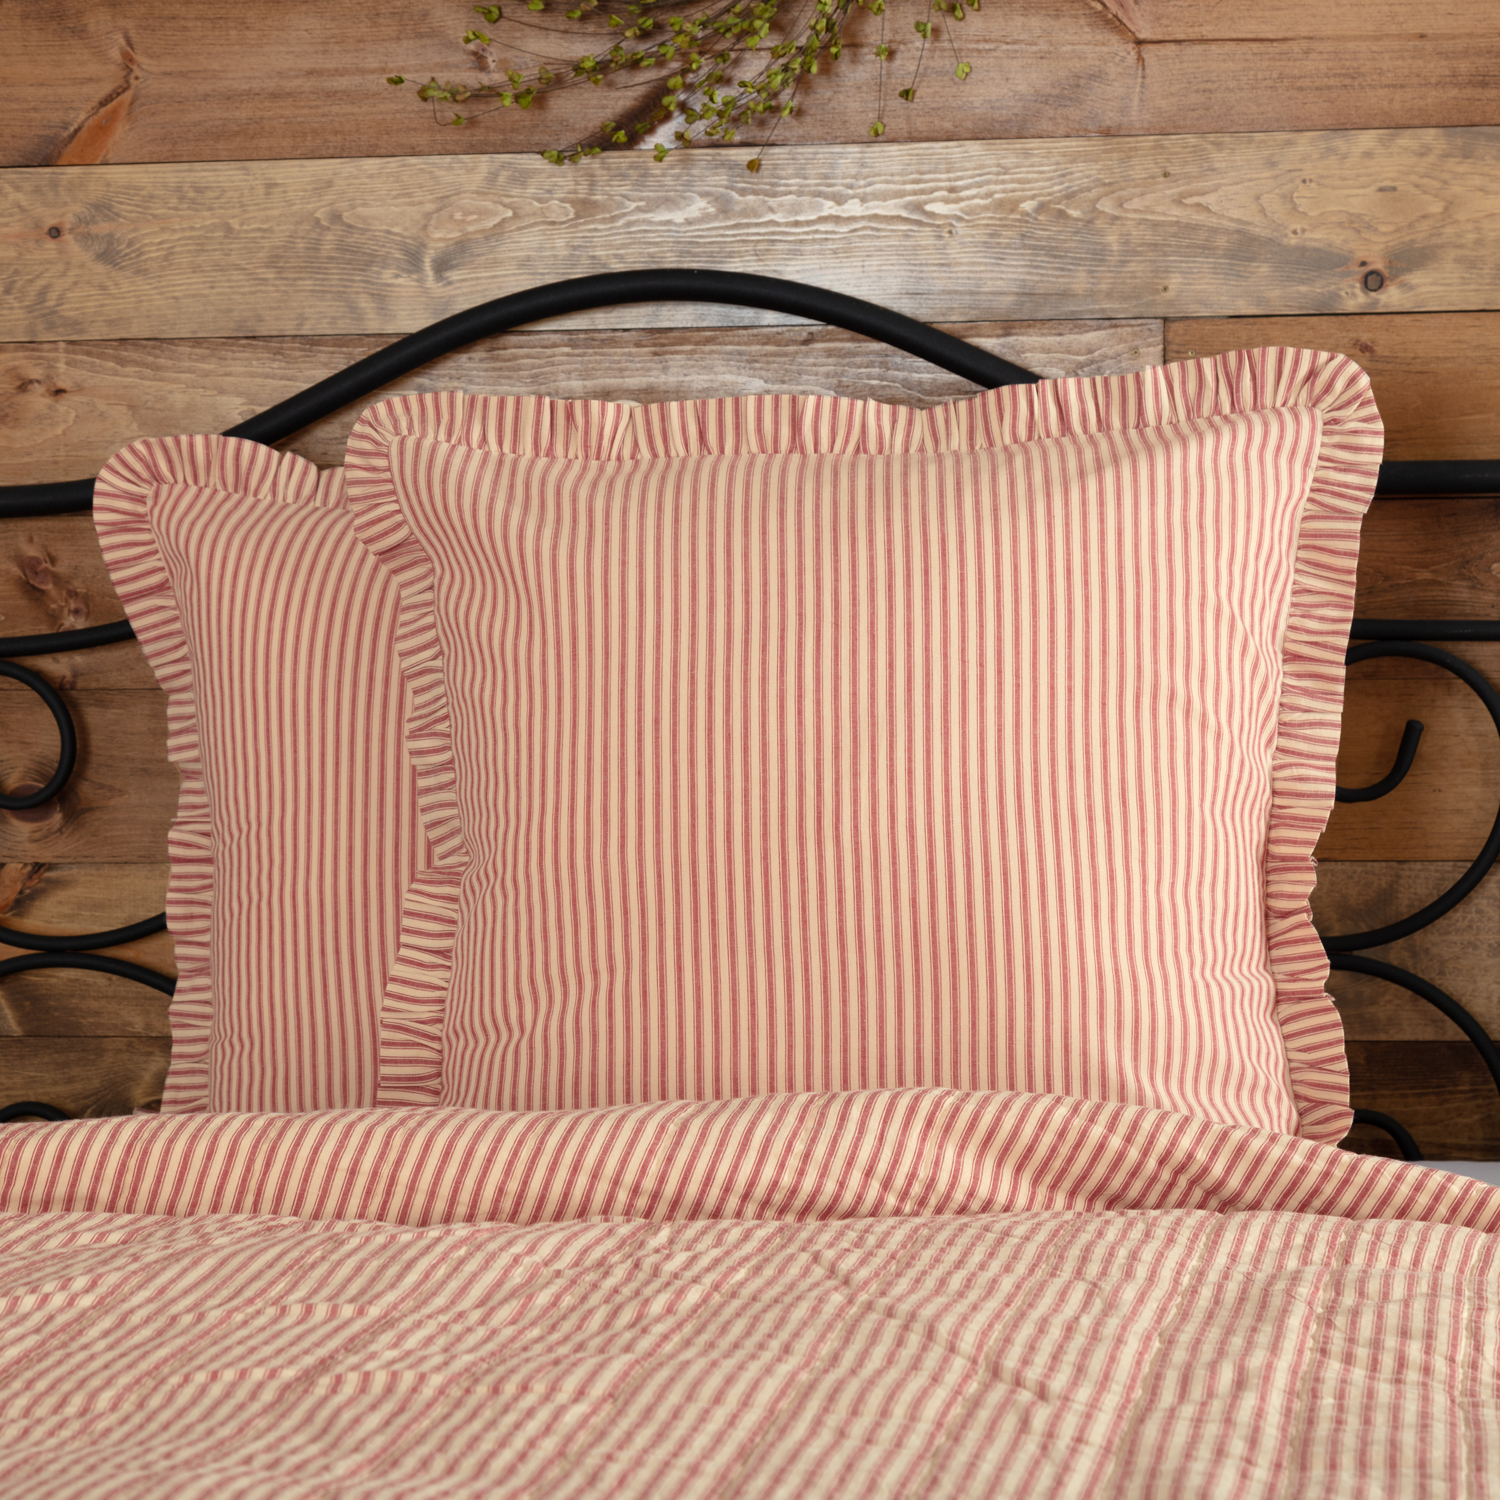 Sawyer Mill Red Ticking Stripe Fabric Euro Sham 26x26